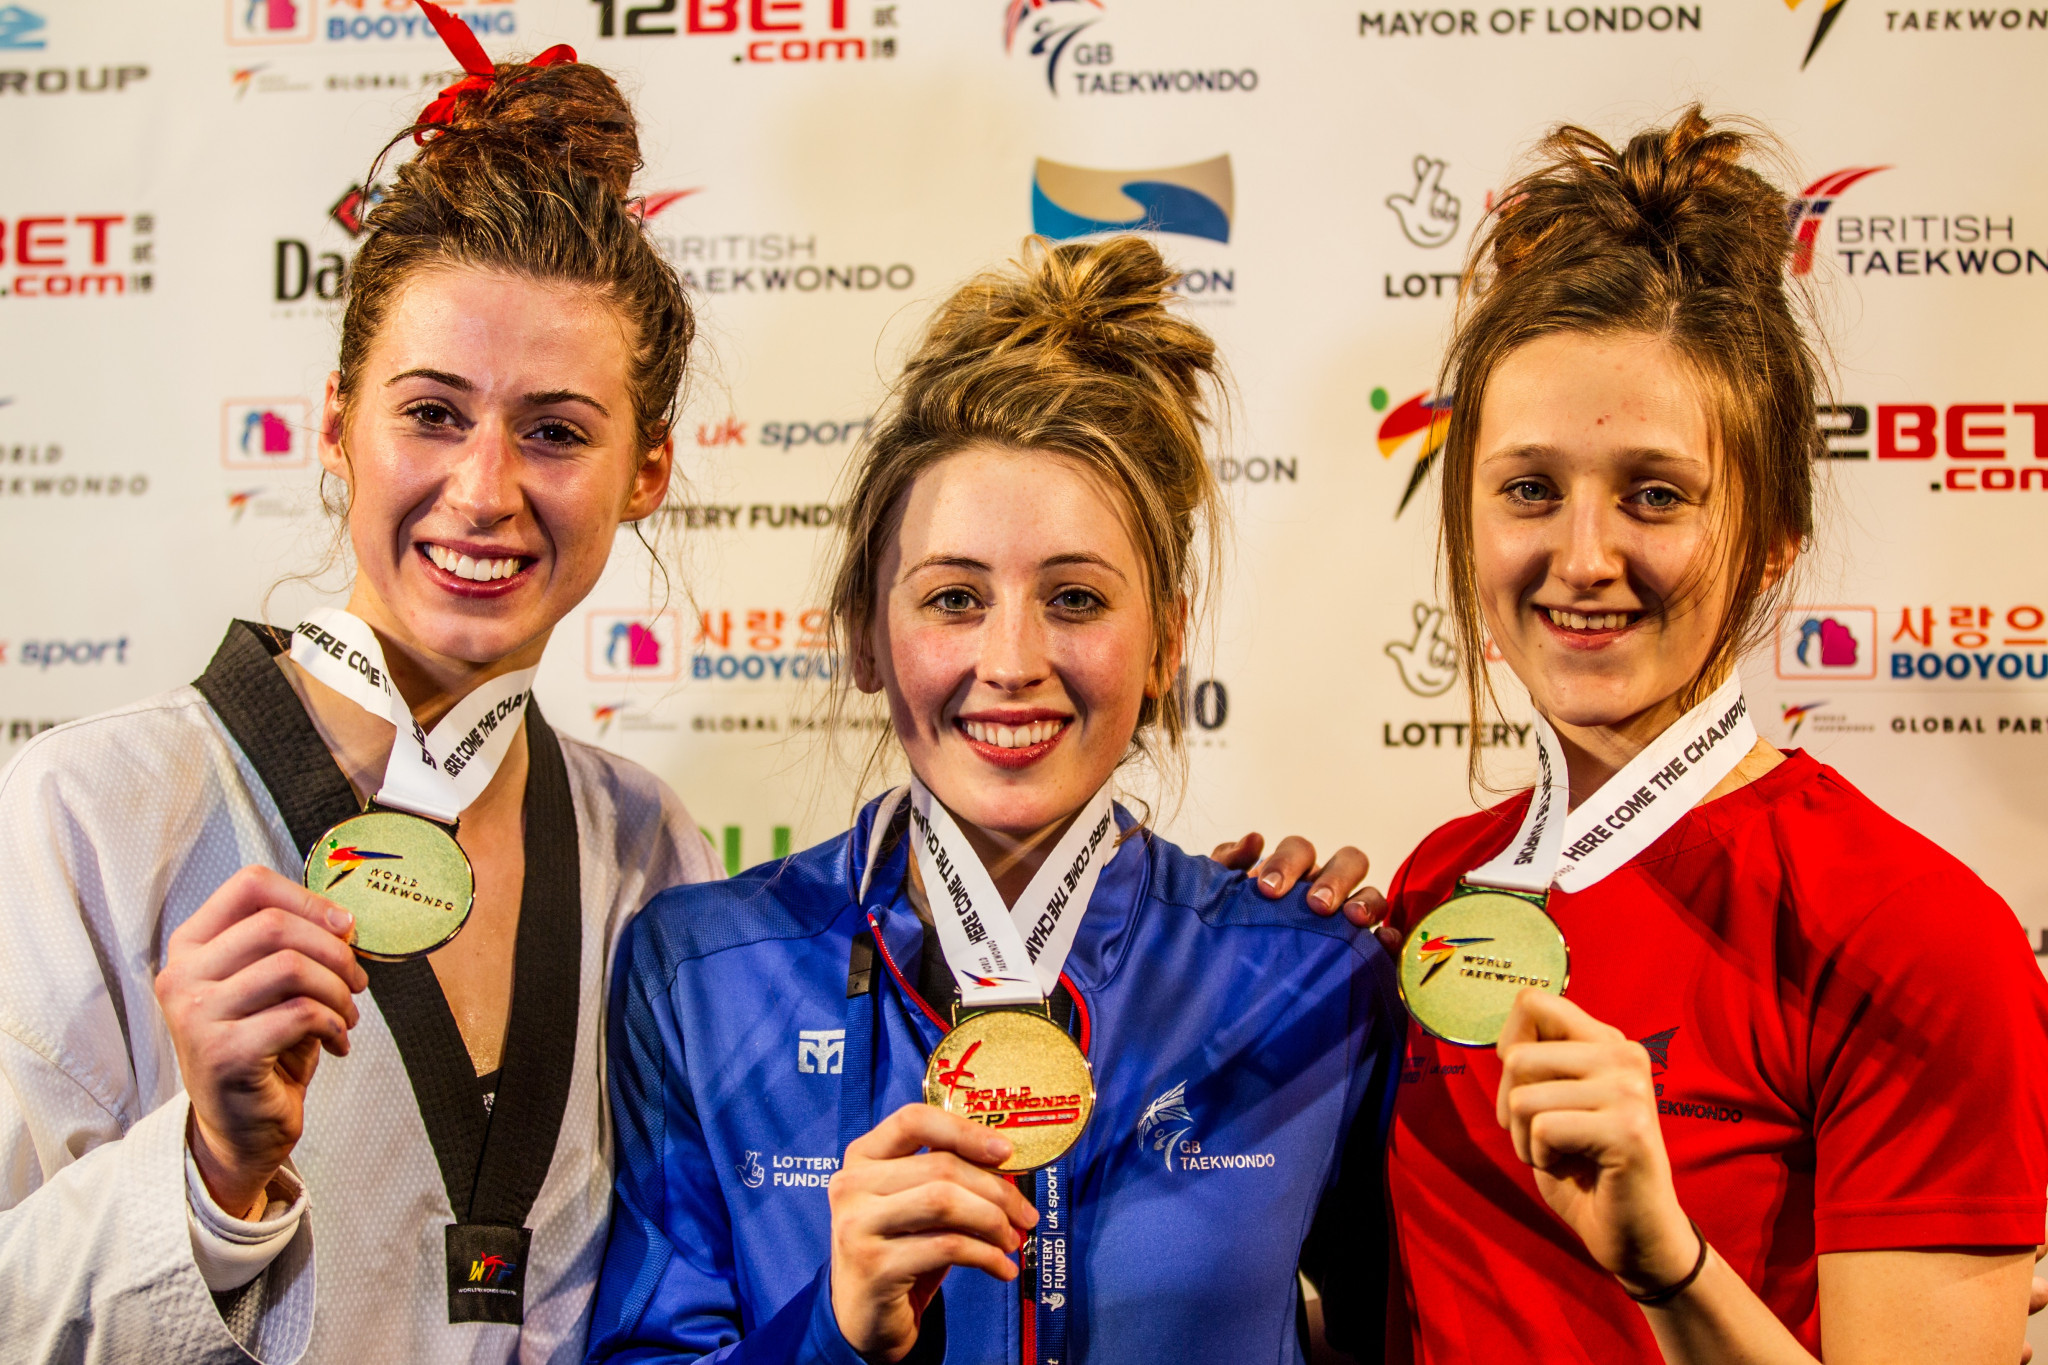 Jones and Walkden take hosts Great Britain's gold medal tally to three at World Taekwondo Grand Prix in London